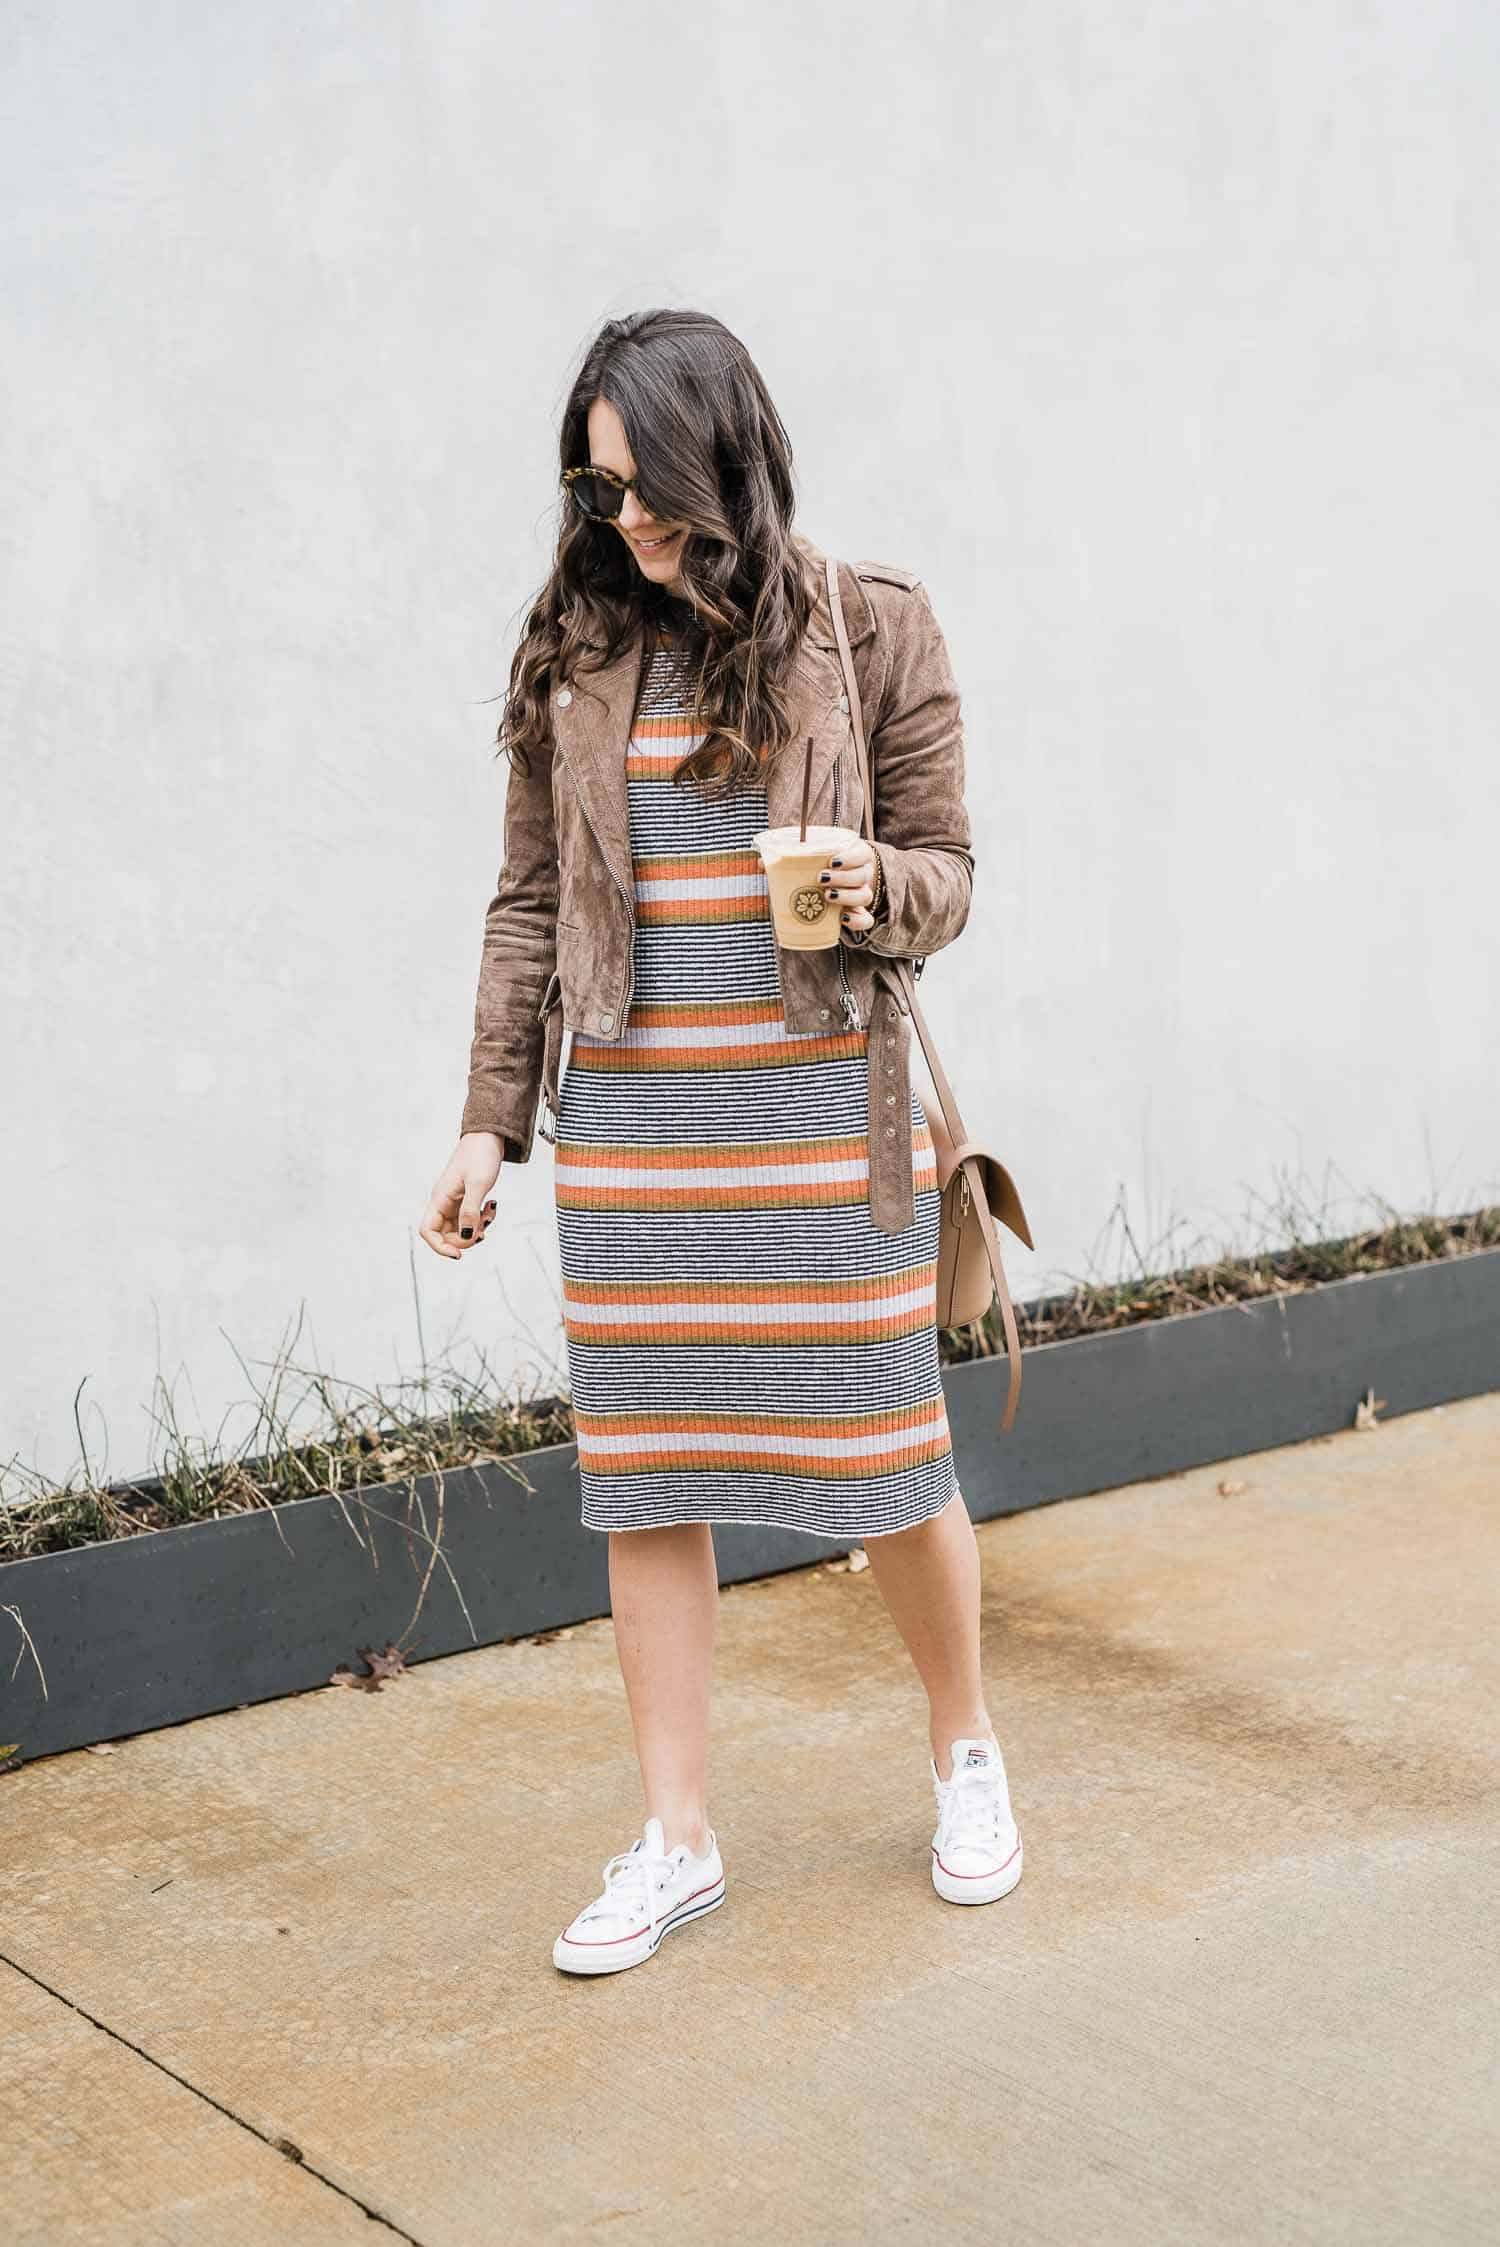 spring sweater dress, jacket and converse outfit